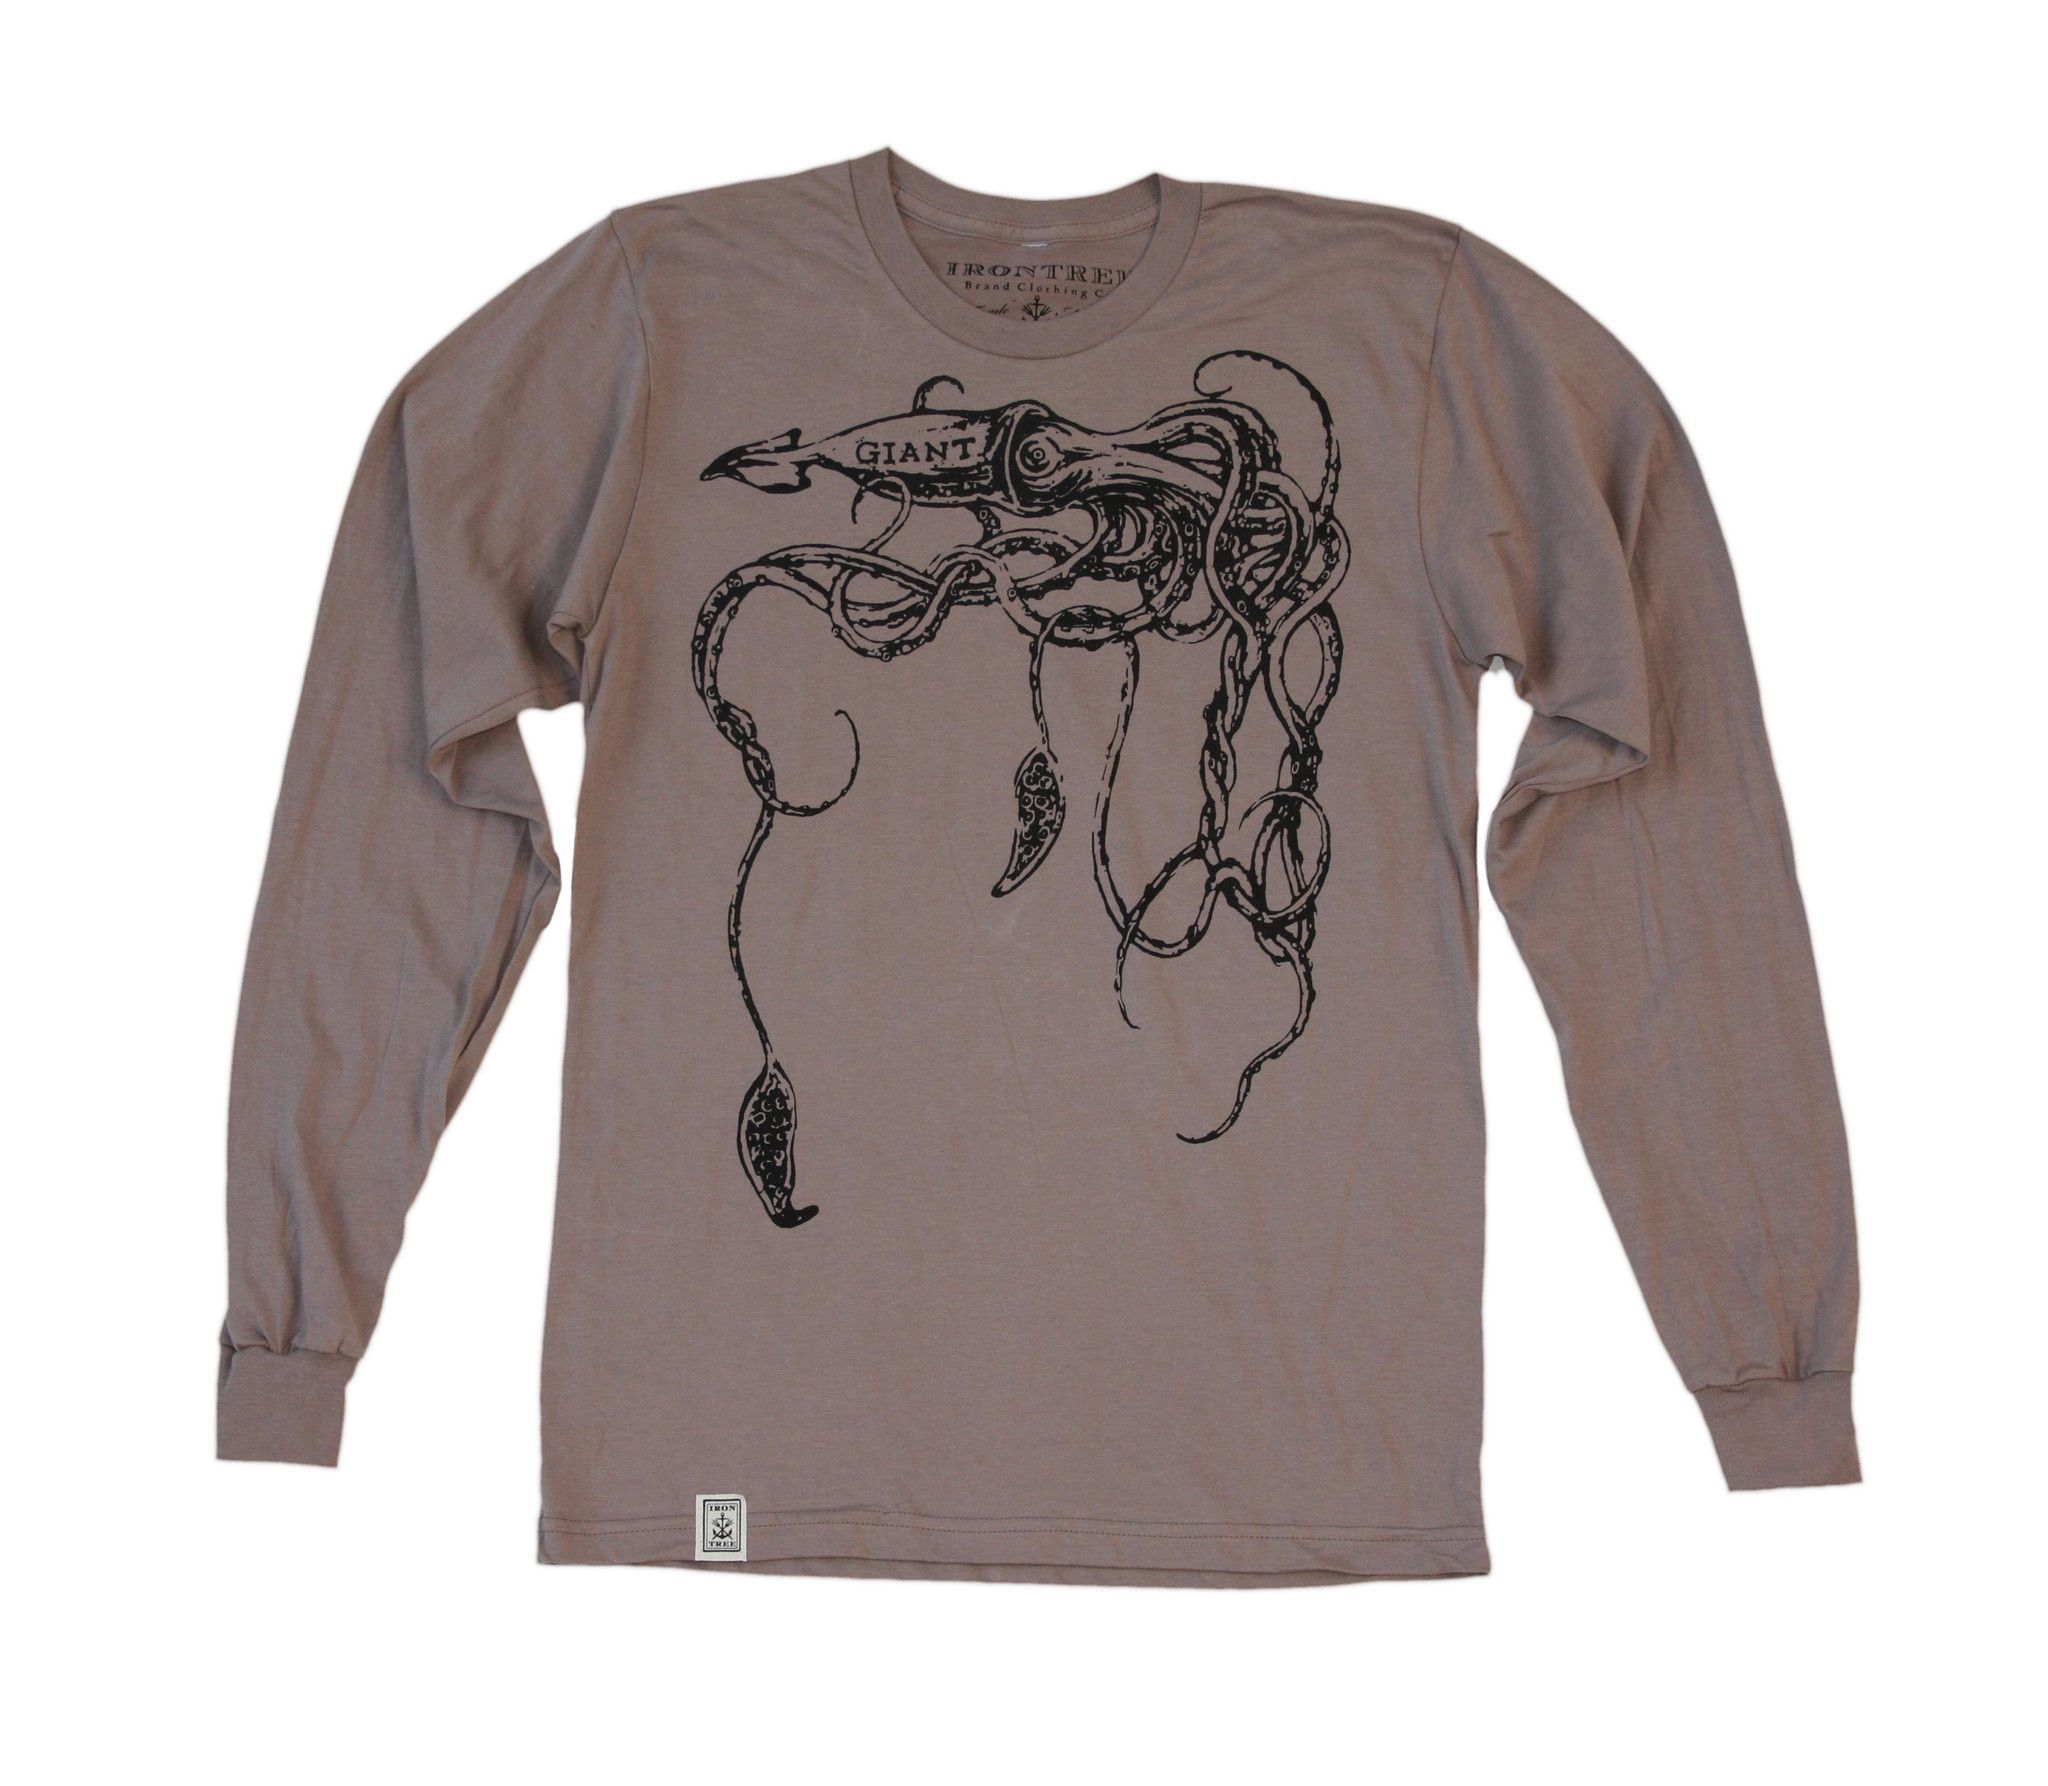 The Giant Squid: Unisex Organic Fine Jersey Long Sleeve T-Shirt in Cinder